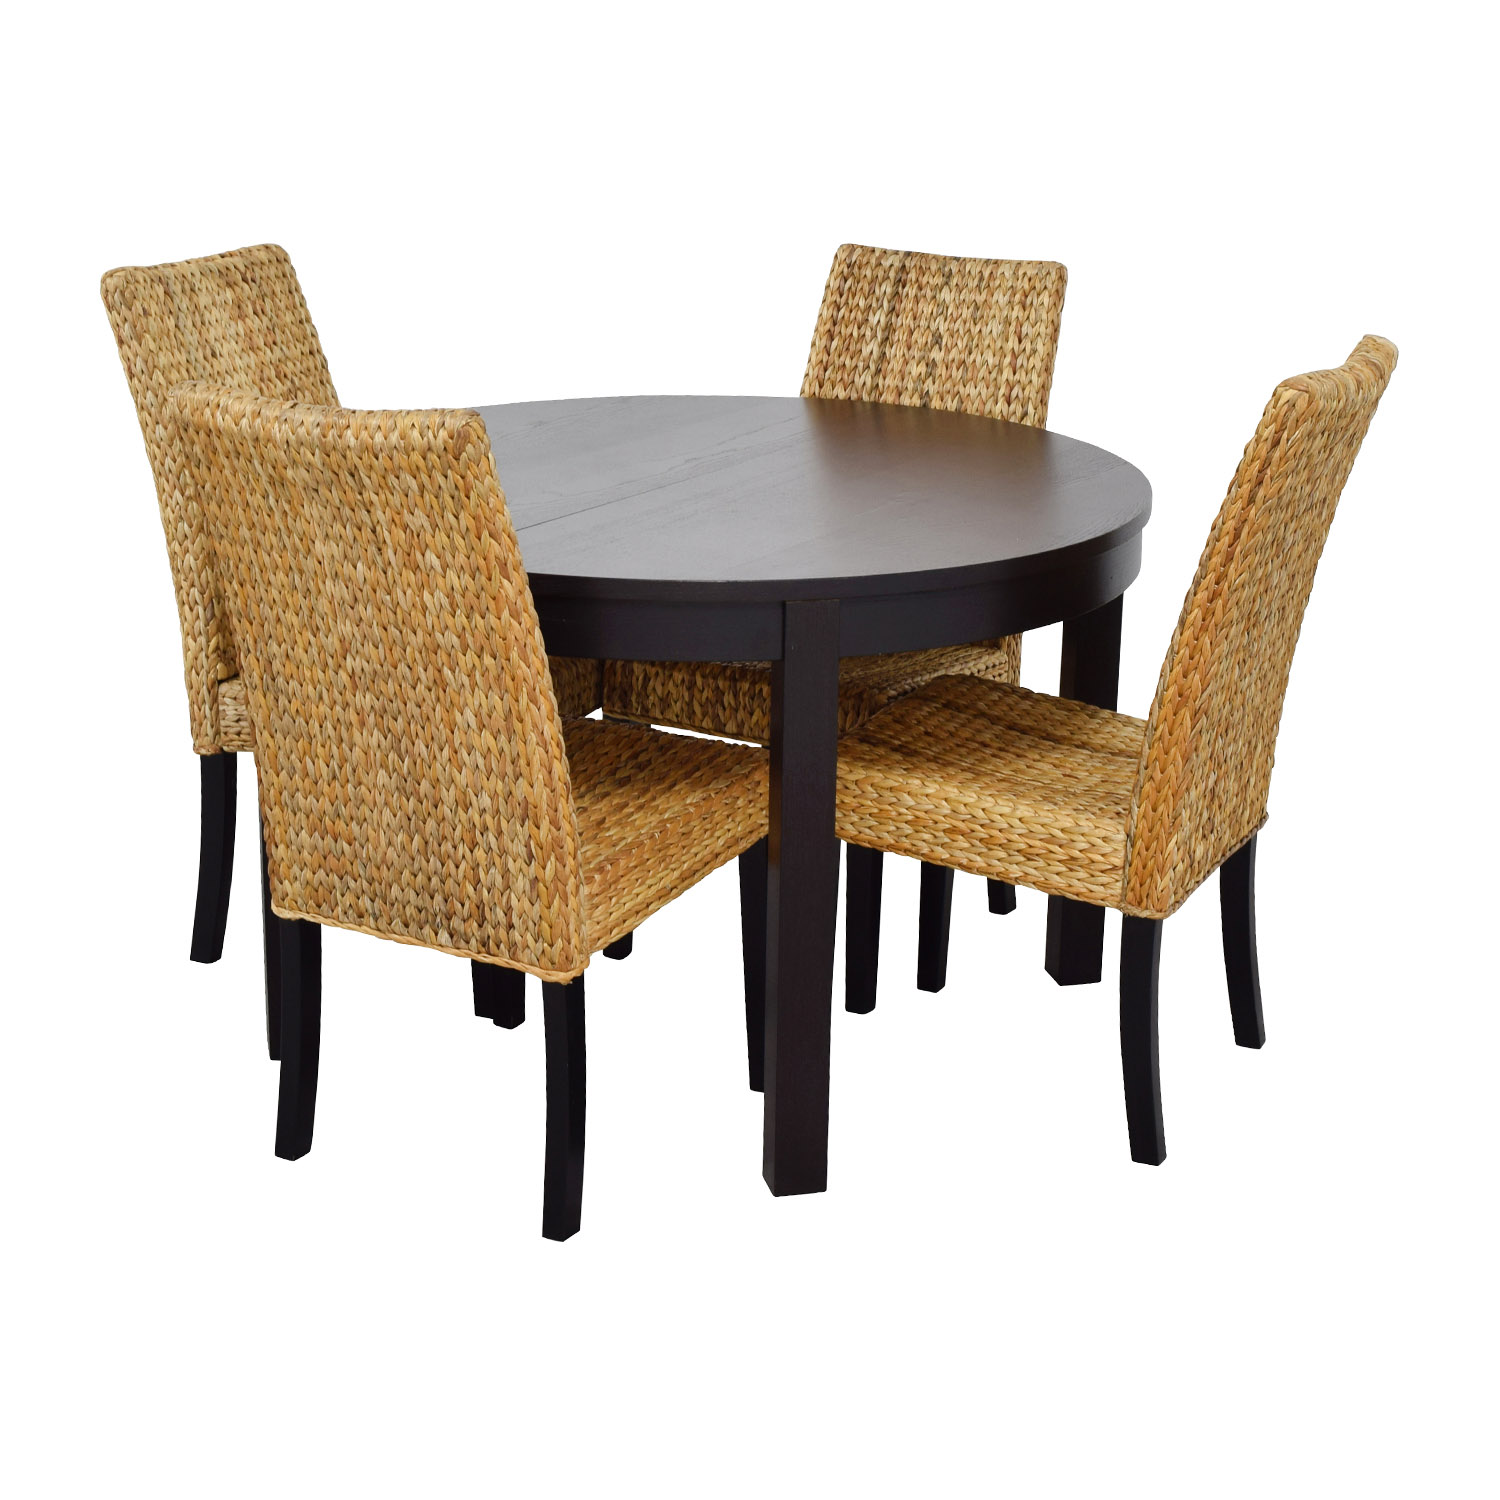 66% OFF  Macy\u002639;s \u0026 IKEA Round Black Dining Table Set with Four Chairs \/ Tables